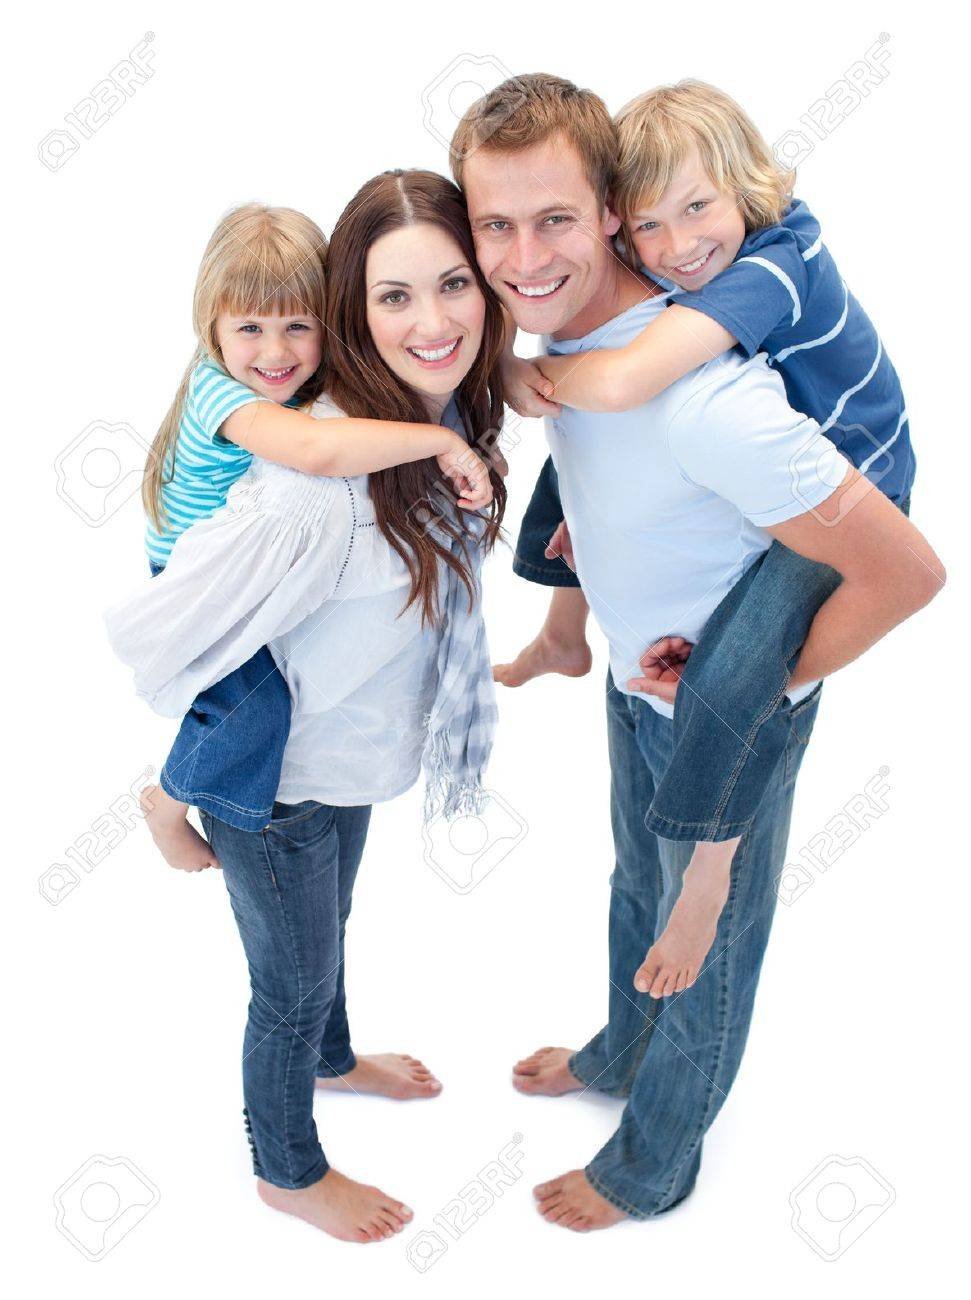 Smiling Family Against A White Background - 10096270